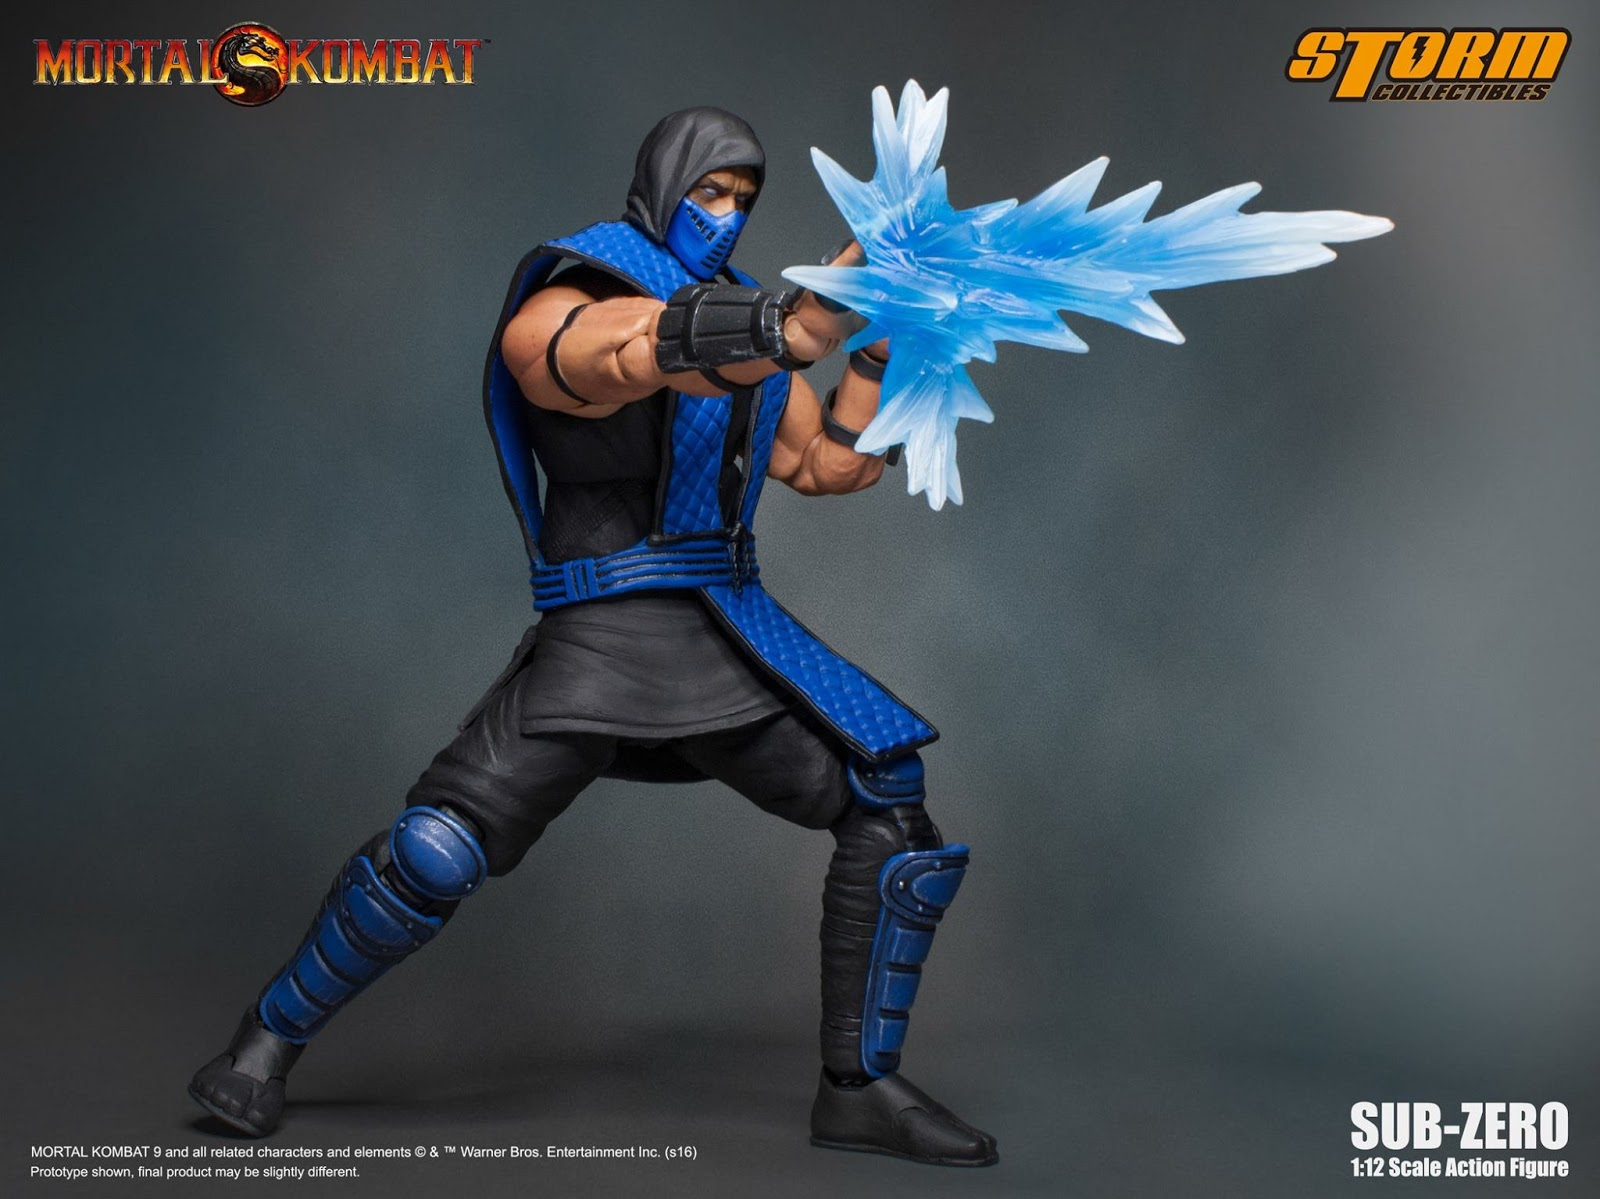 infinite earths storm collectibles reveals mortal kombat sub zero. Black Bedroom Furniture Sets. Home Design Ideas